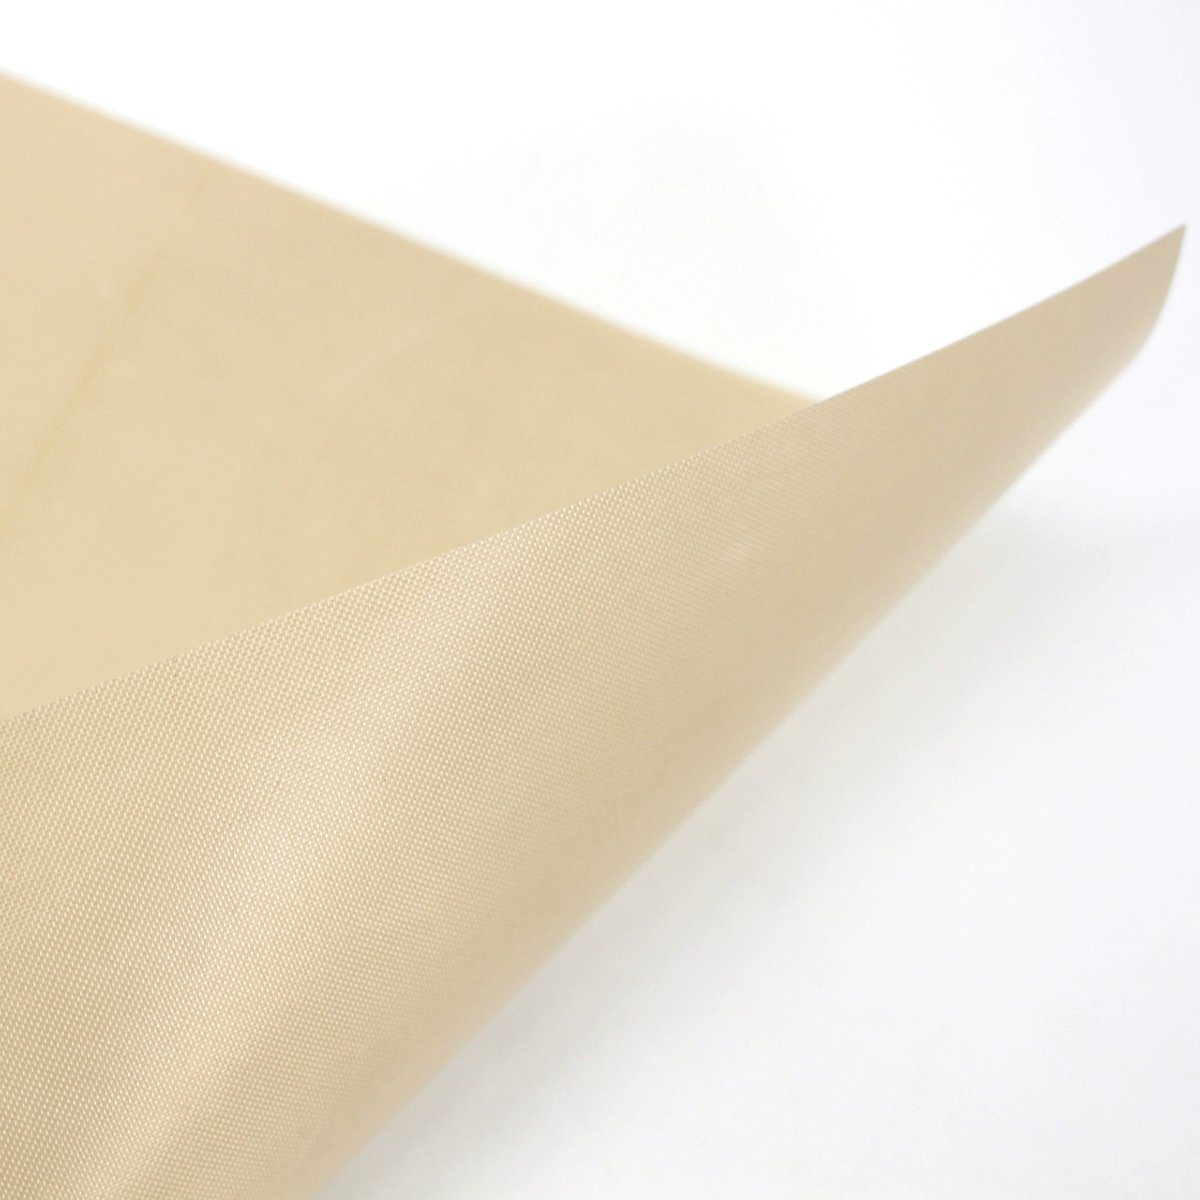 1pcs Universal Heavy Duty Oven Liner Gas Hob Protector Sheets (Beige) by BESTONZON (Image #3)